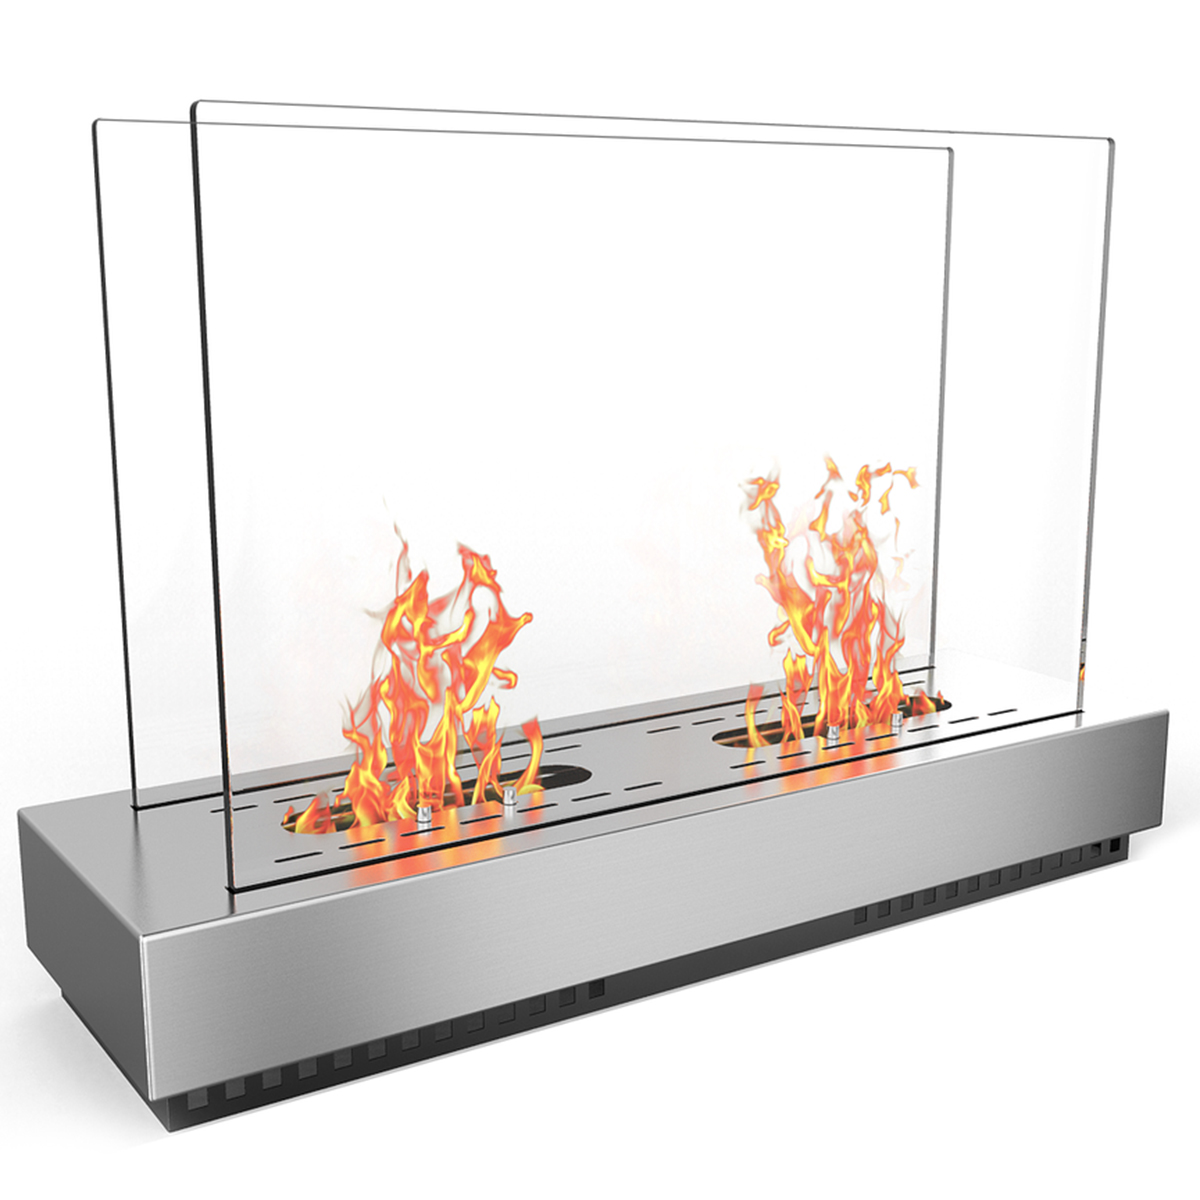 Regal Flame Delano Ventless Free Standing Bio Ethanol Fireplace Can Be Used as a Indoor, Outdoor, Gas Log Inserts, Vent Free, El